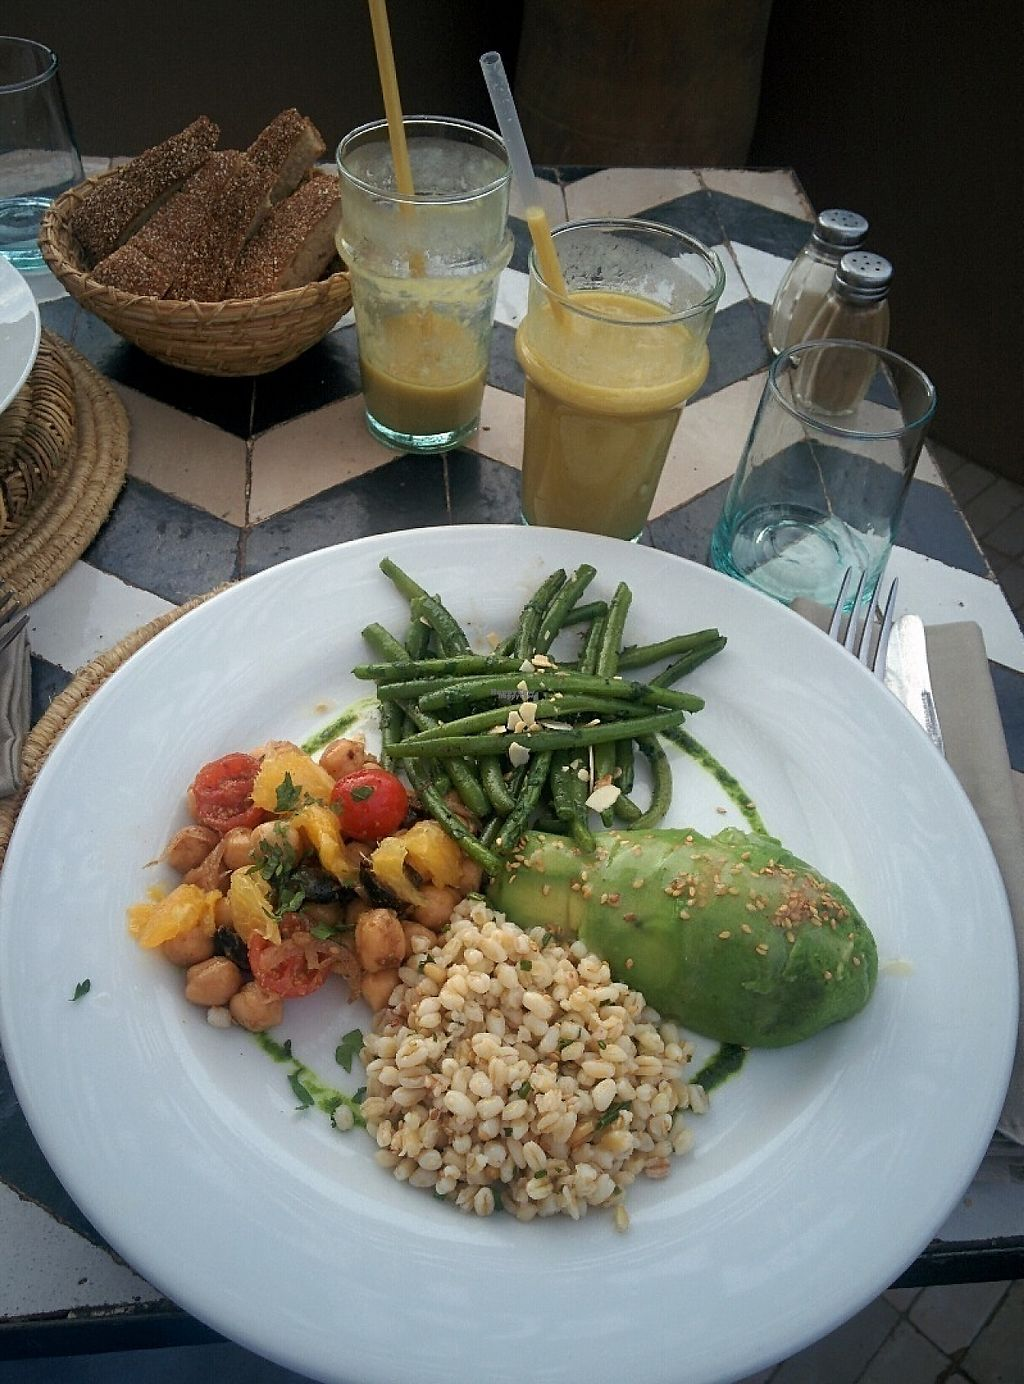 """Photo of NOMAD  by <a href=""""/members/profile/EarthlingAndrea"""">EarthlingAndrea</a> <br/>This meal was vegetarian but I changed the cheese cream for a piece of avocado.  And green smoothie of course! <br/> December 10, 2016  - <a href='/contact/abuse/image/83652/198879'>Report</a>"""